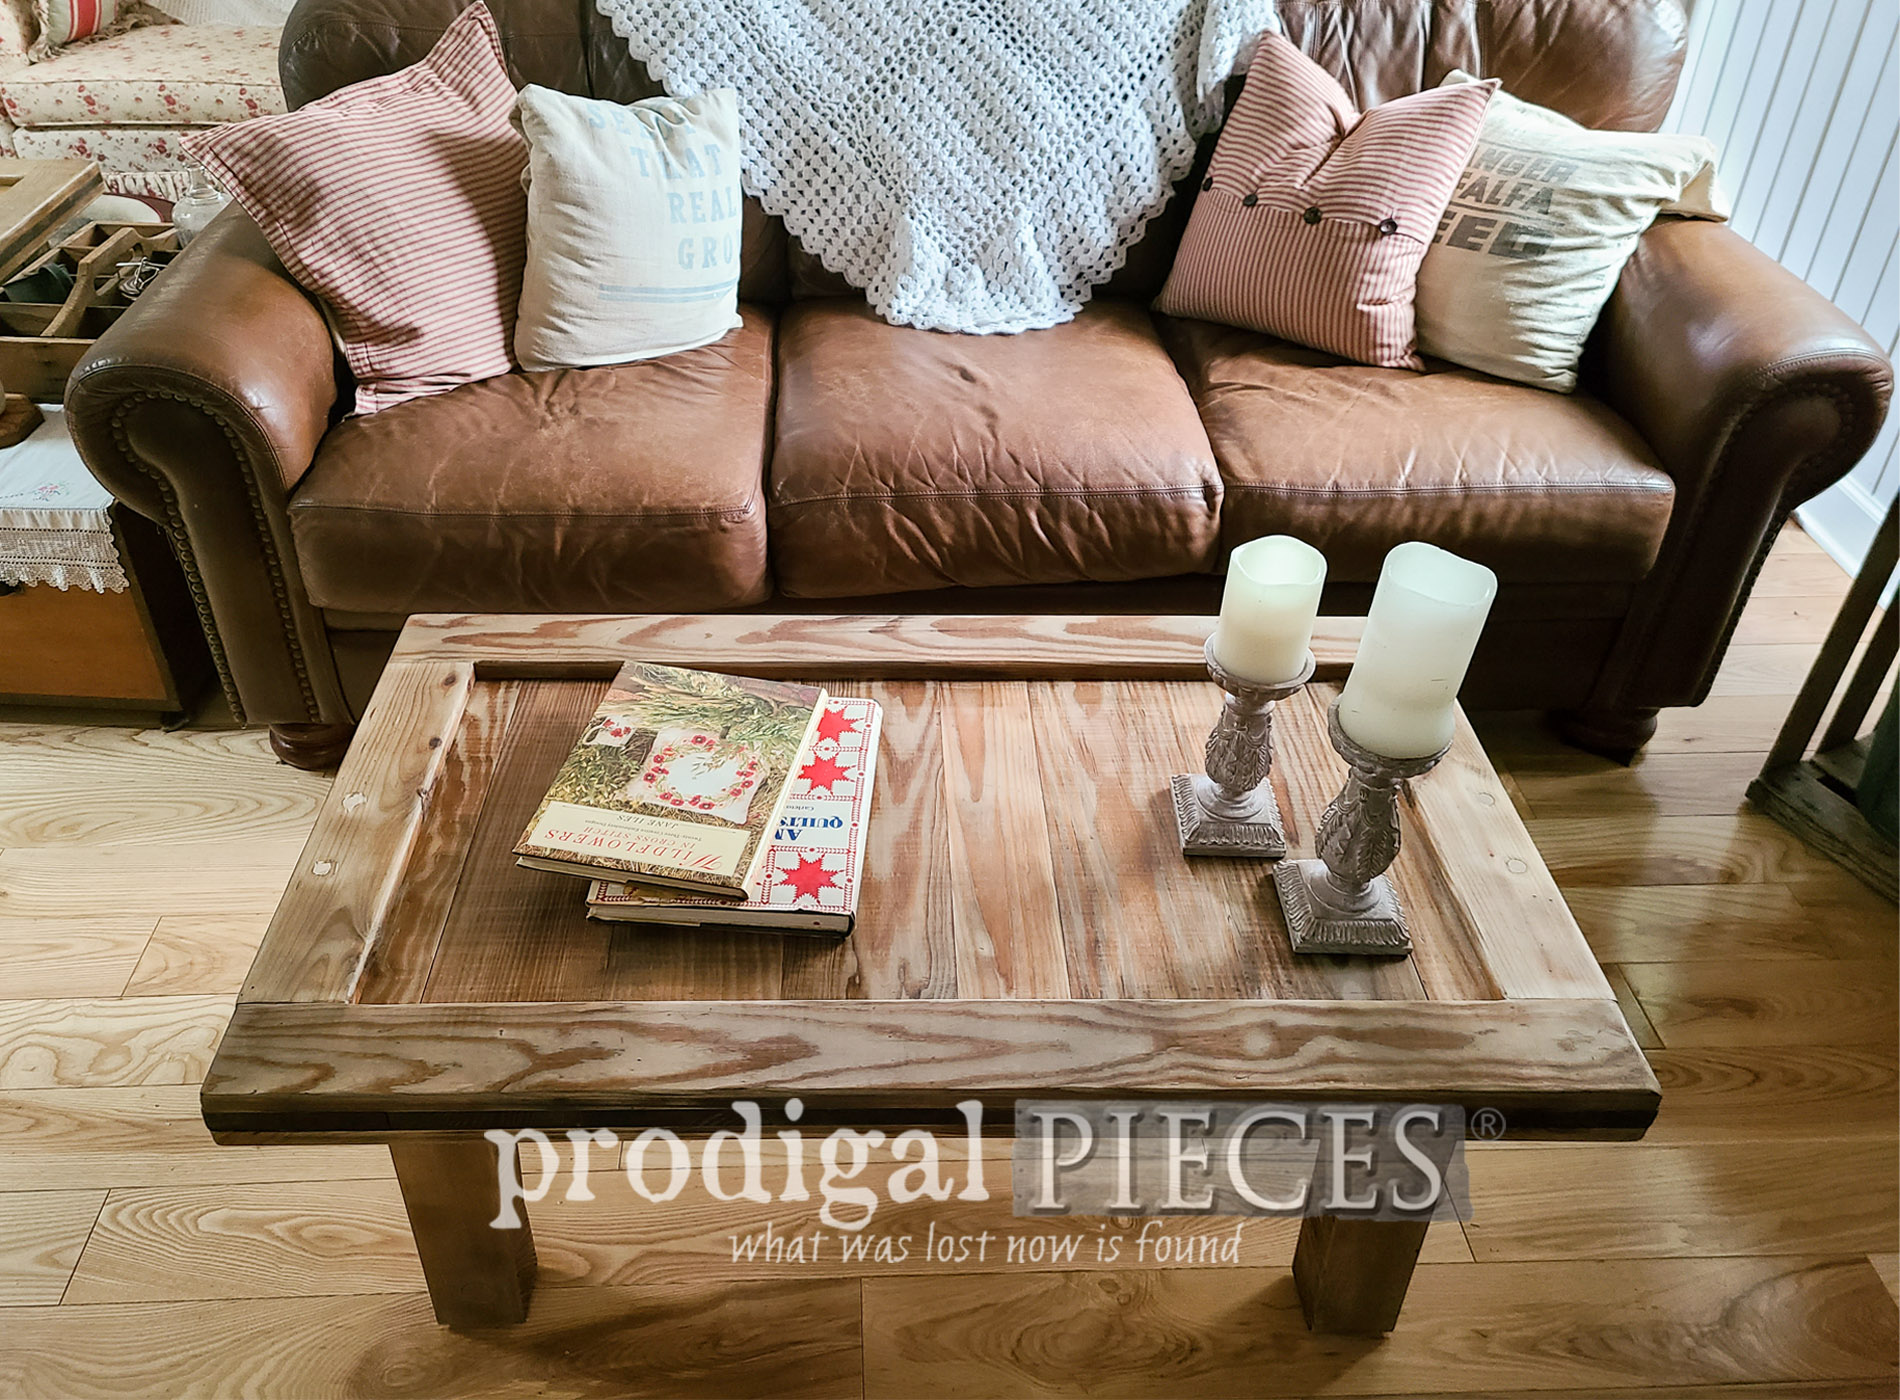 Featured Upcycled Coffee Table for Farmhouse Decor by Larissa of Prodigal Pieces | prodigalpieces.com #prodigalpieces #furniture #home #homedecor #farmhouse #diy